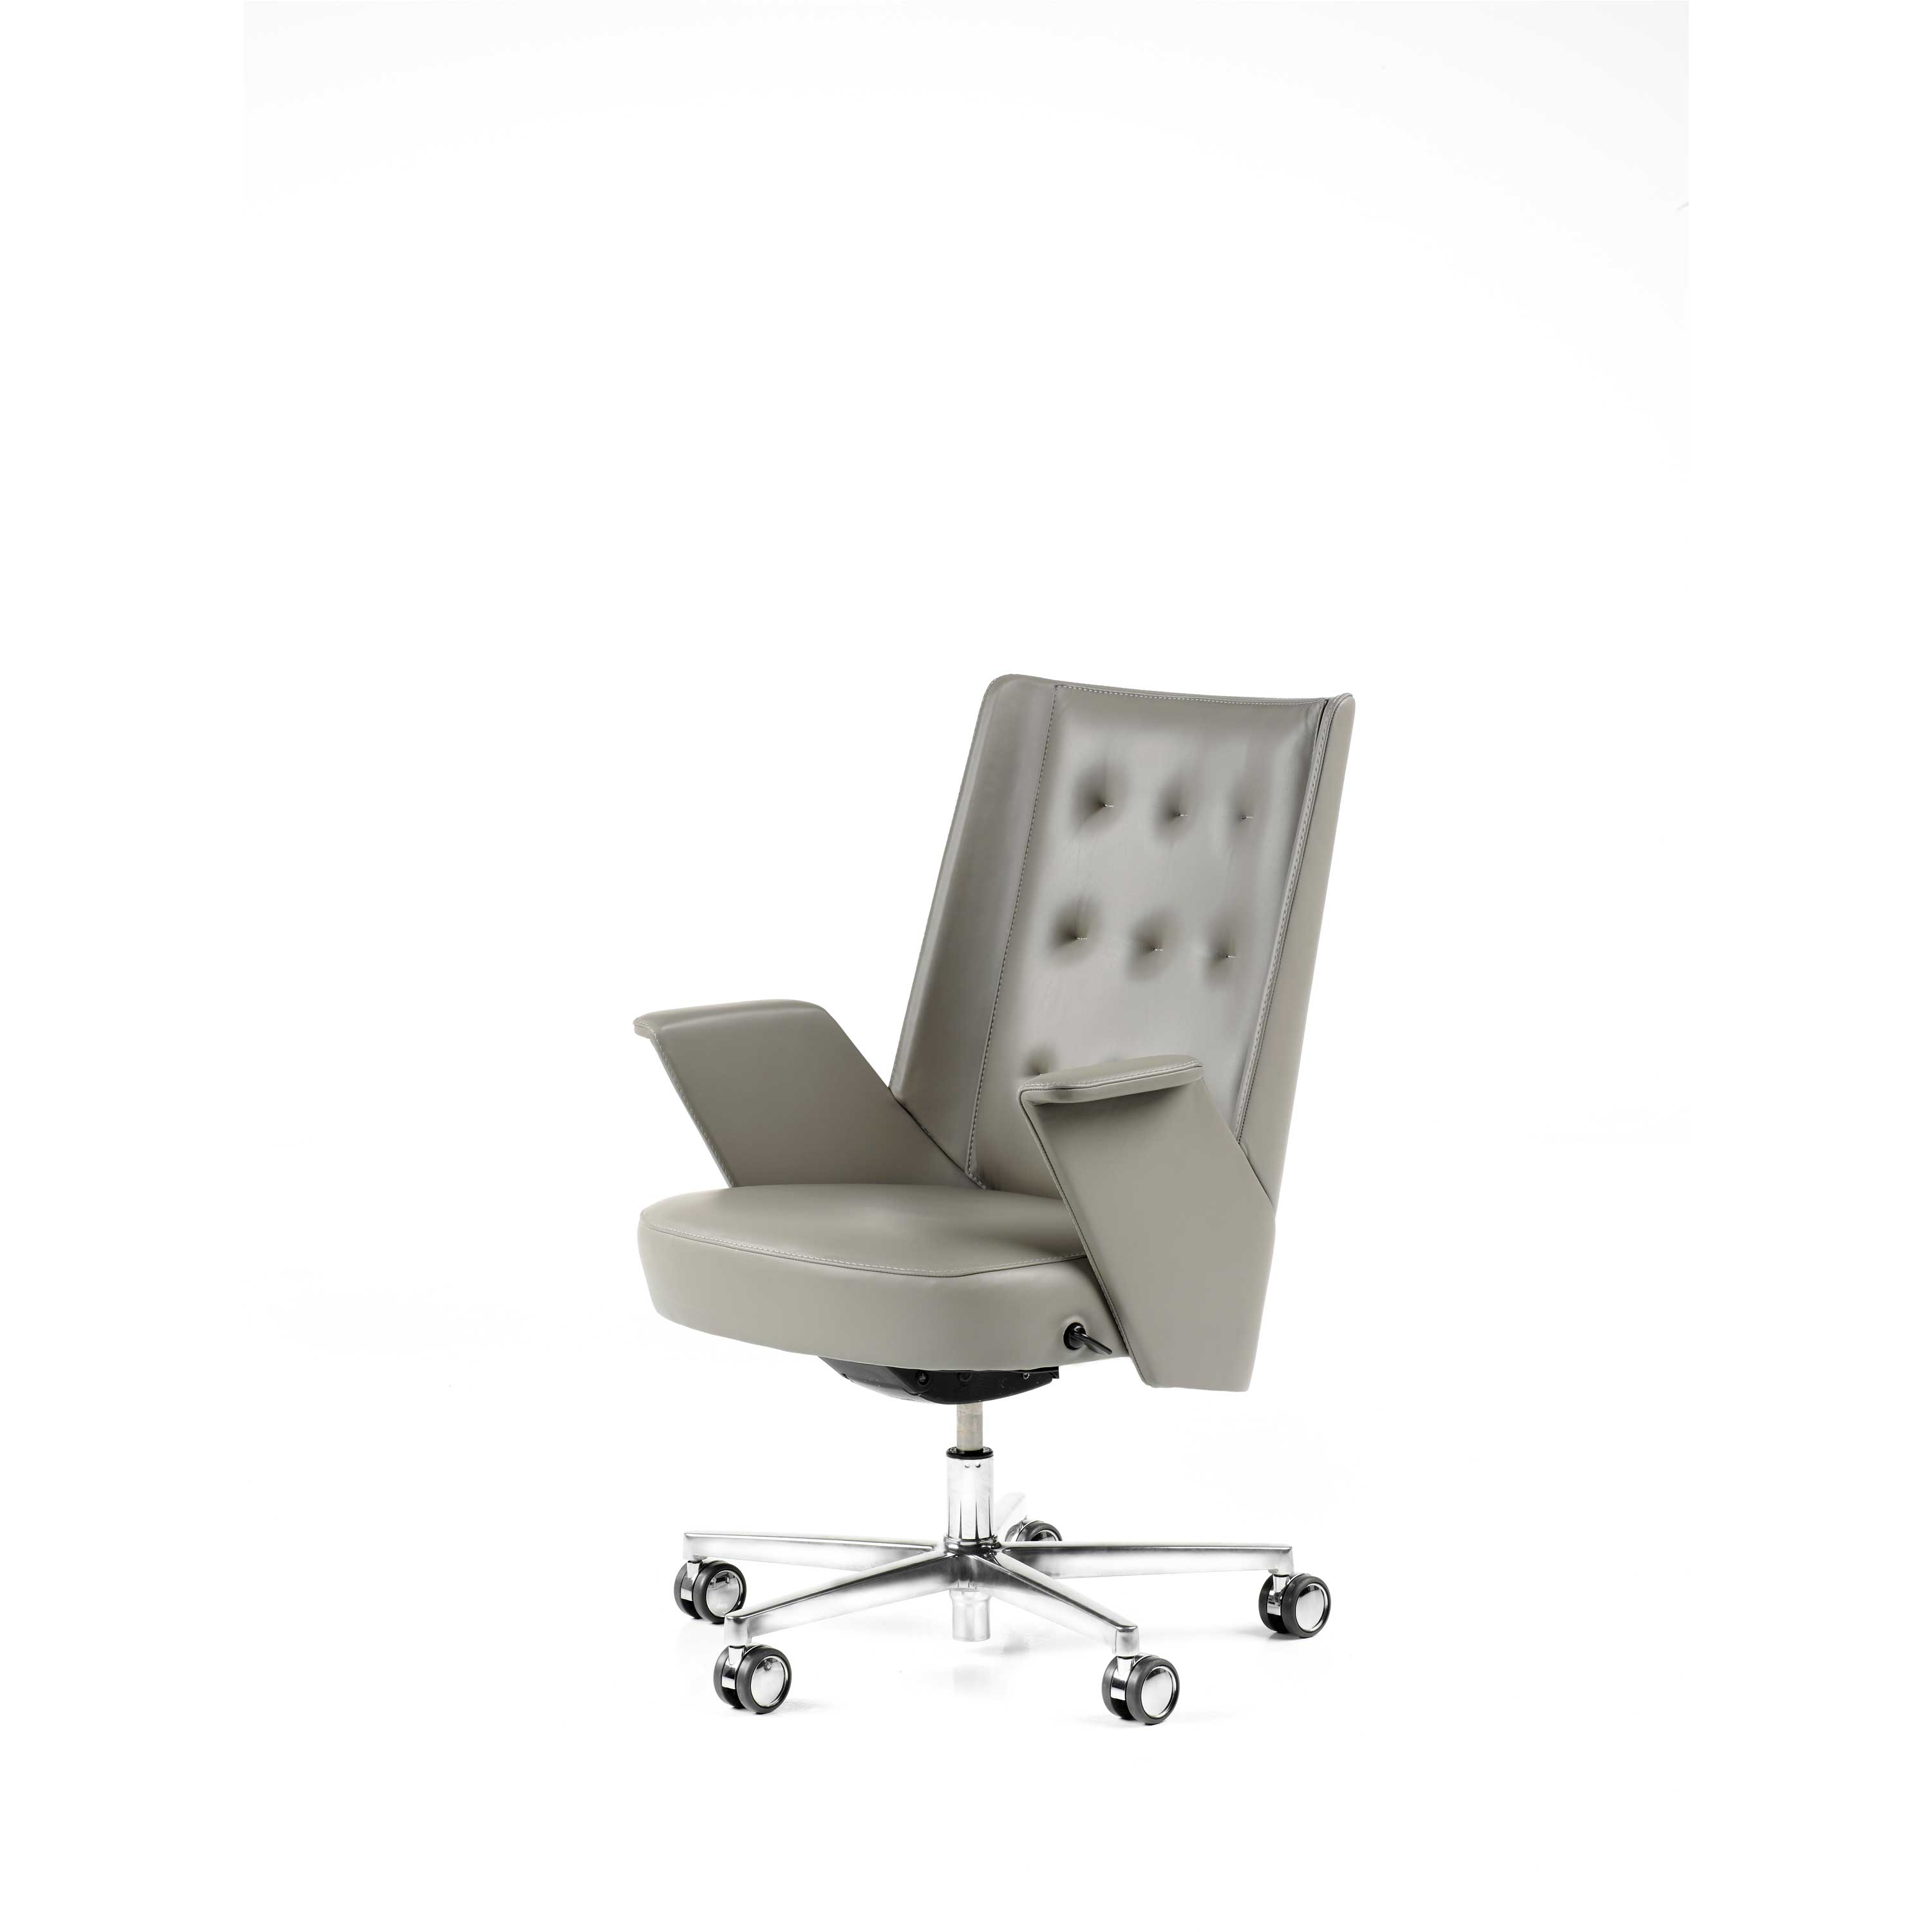 11S_Estel_Comfort&Relax_Office-Chair_Embrasse